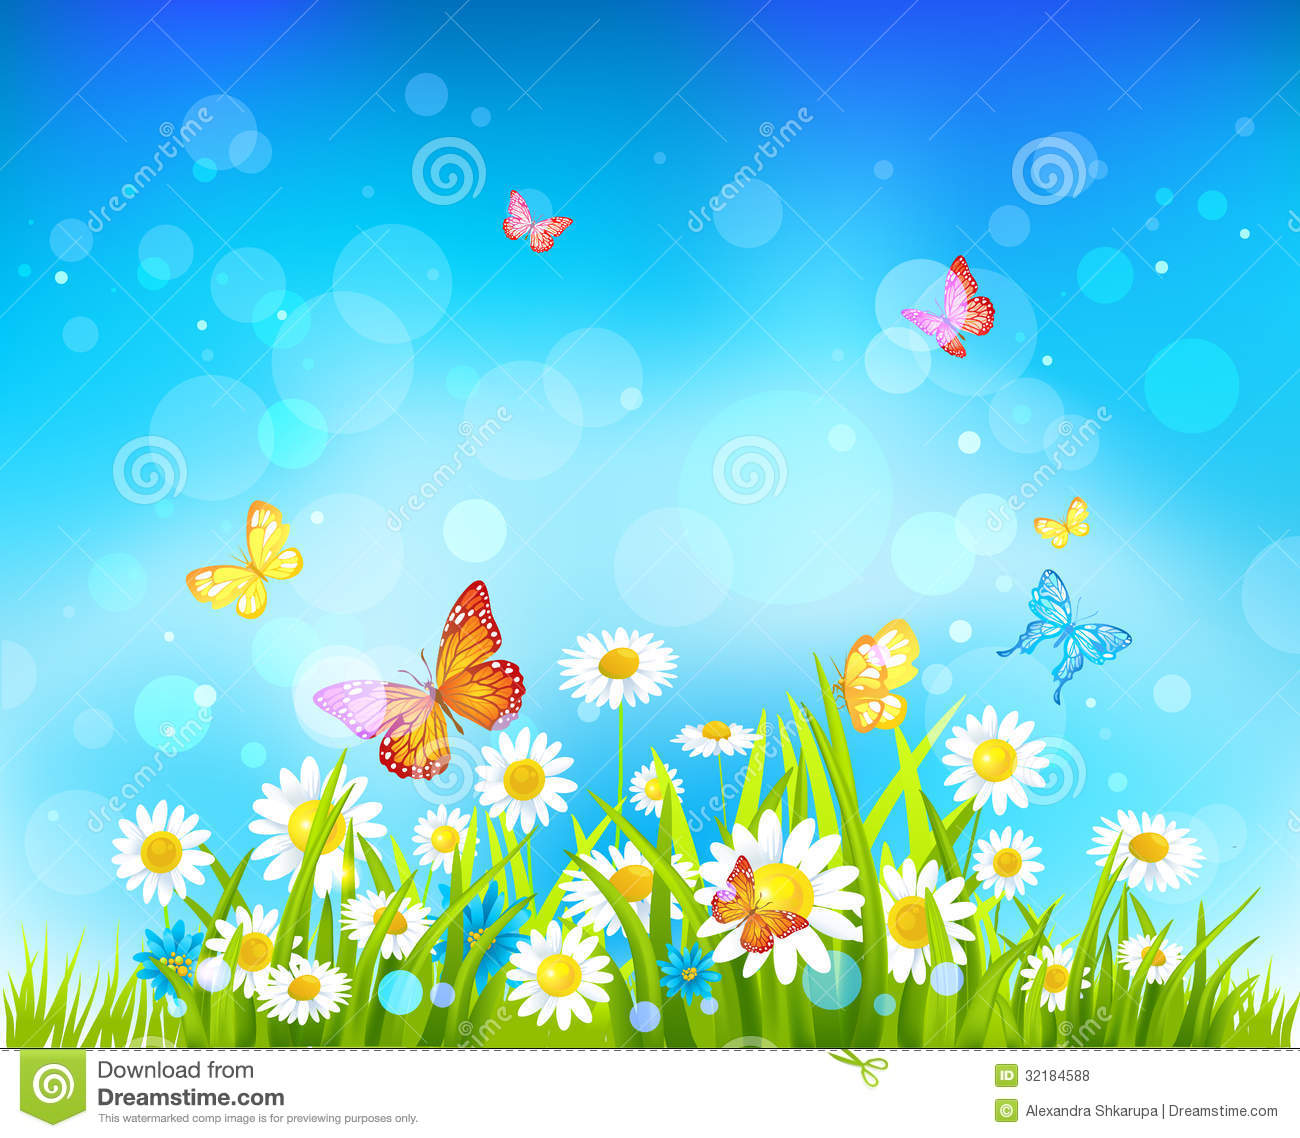 Sunny Day Background With Flowers And Butterflies Stock ...